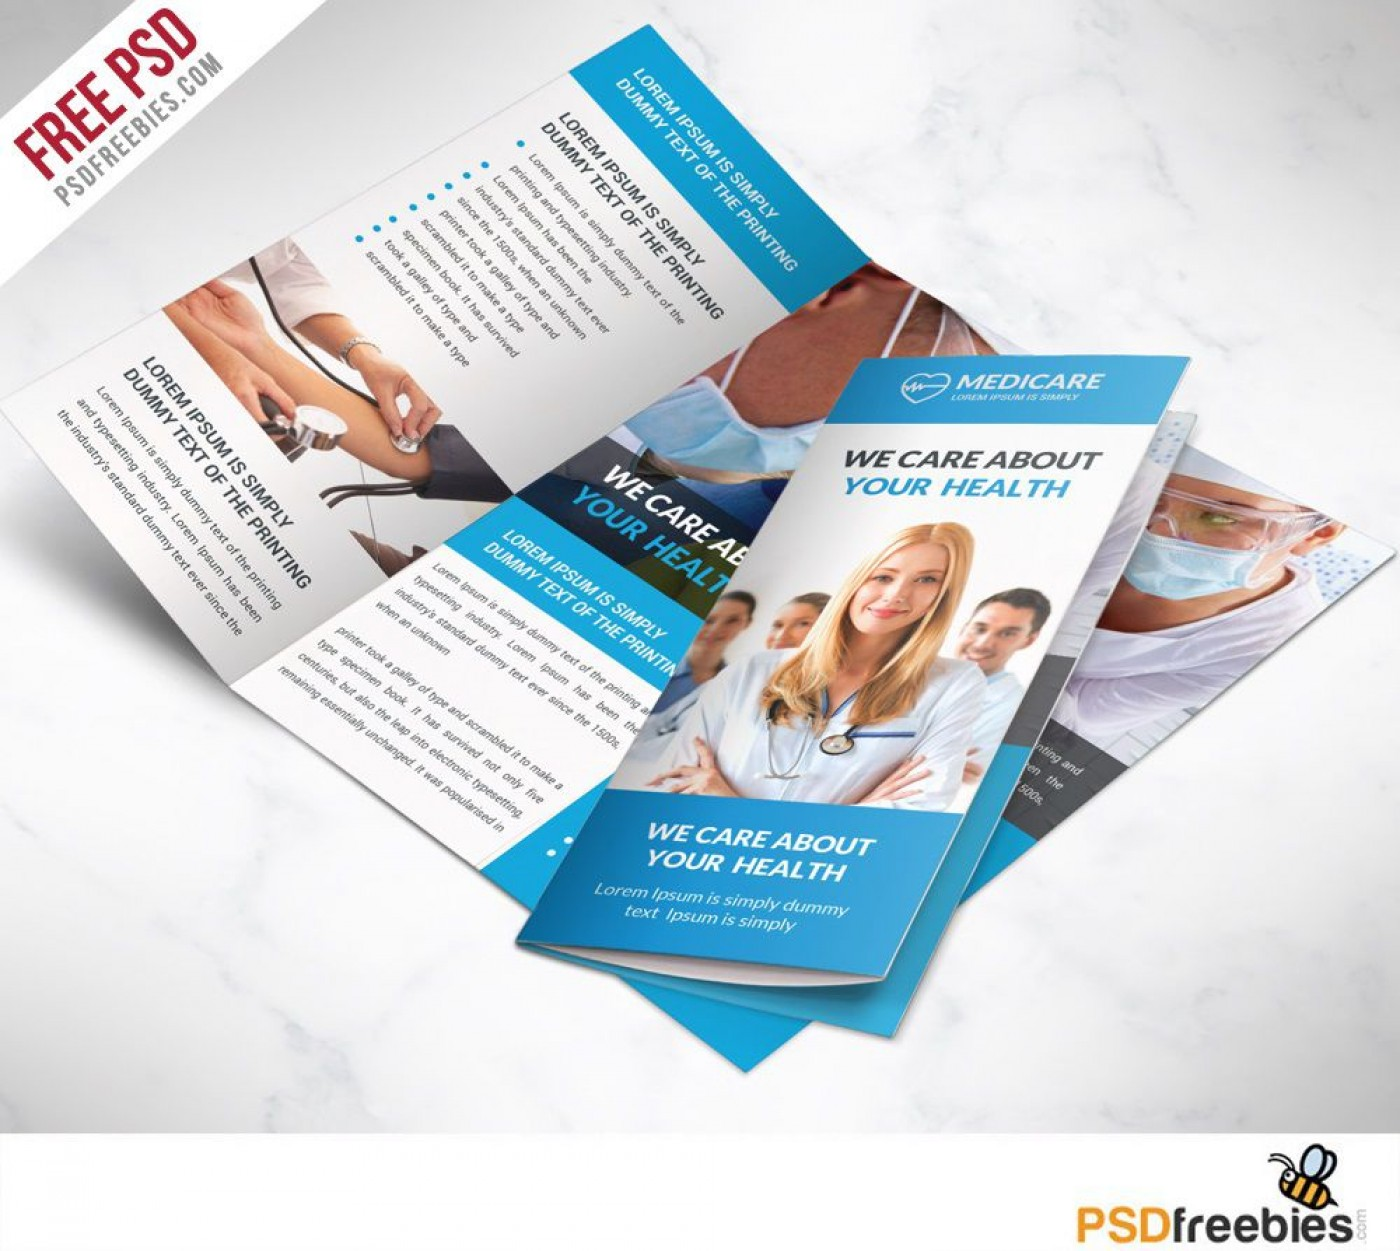 007 Unforgettable Photoshop Brochure Design Template Free Download High Def 1400